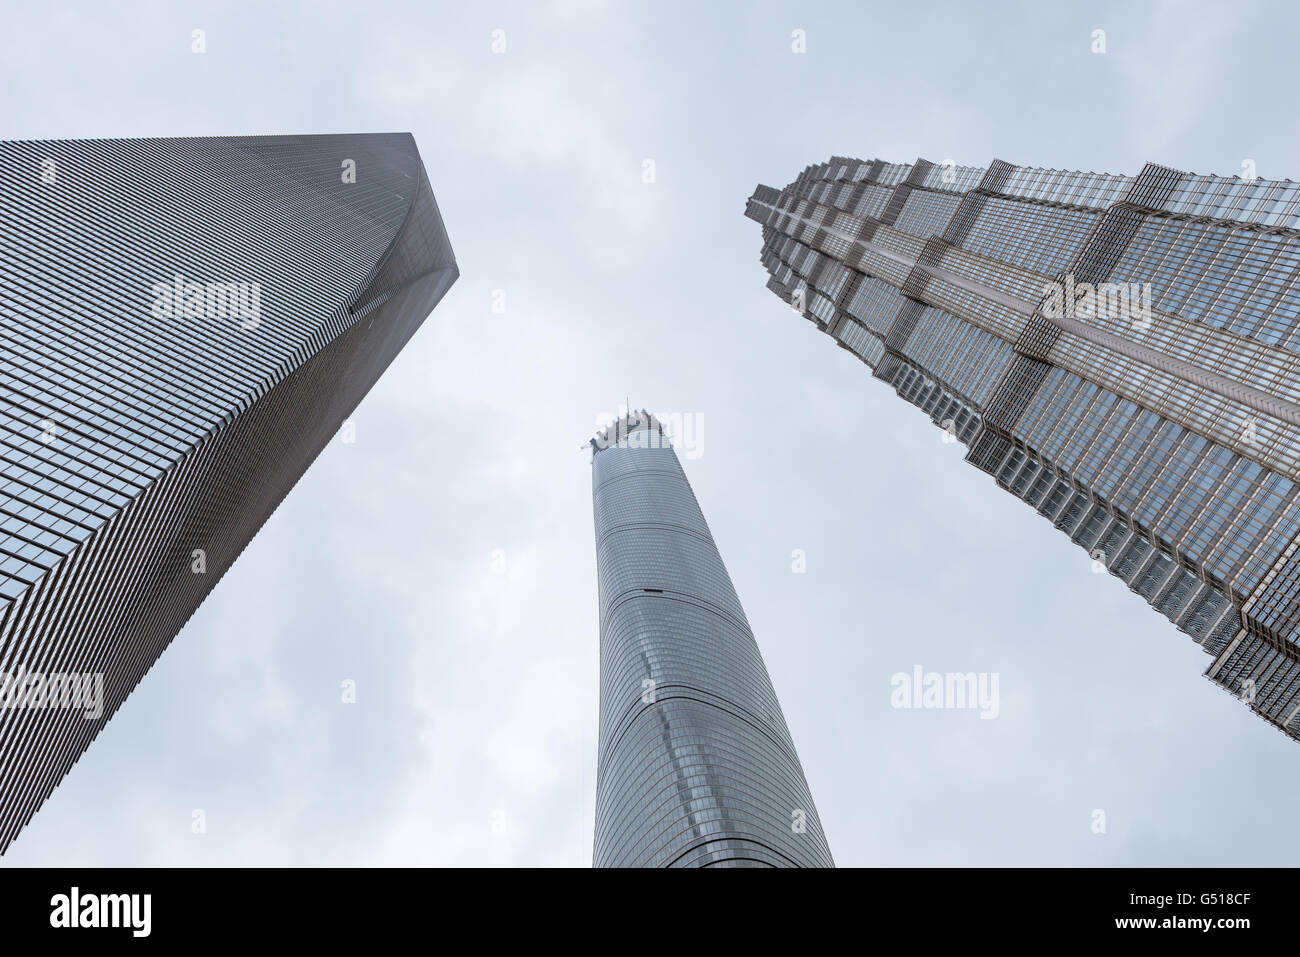 China, Shanghai, Shanghai World Financial Center, Shanghai Tower and Jin Mao Tower from the frog perspective - Stock Image